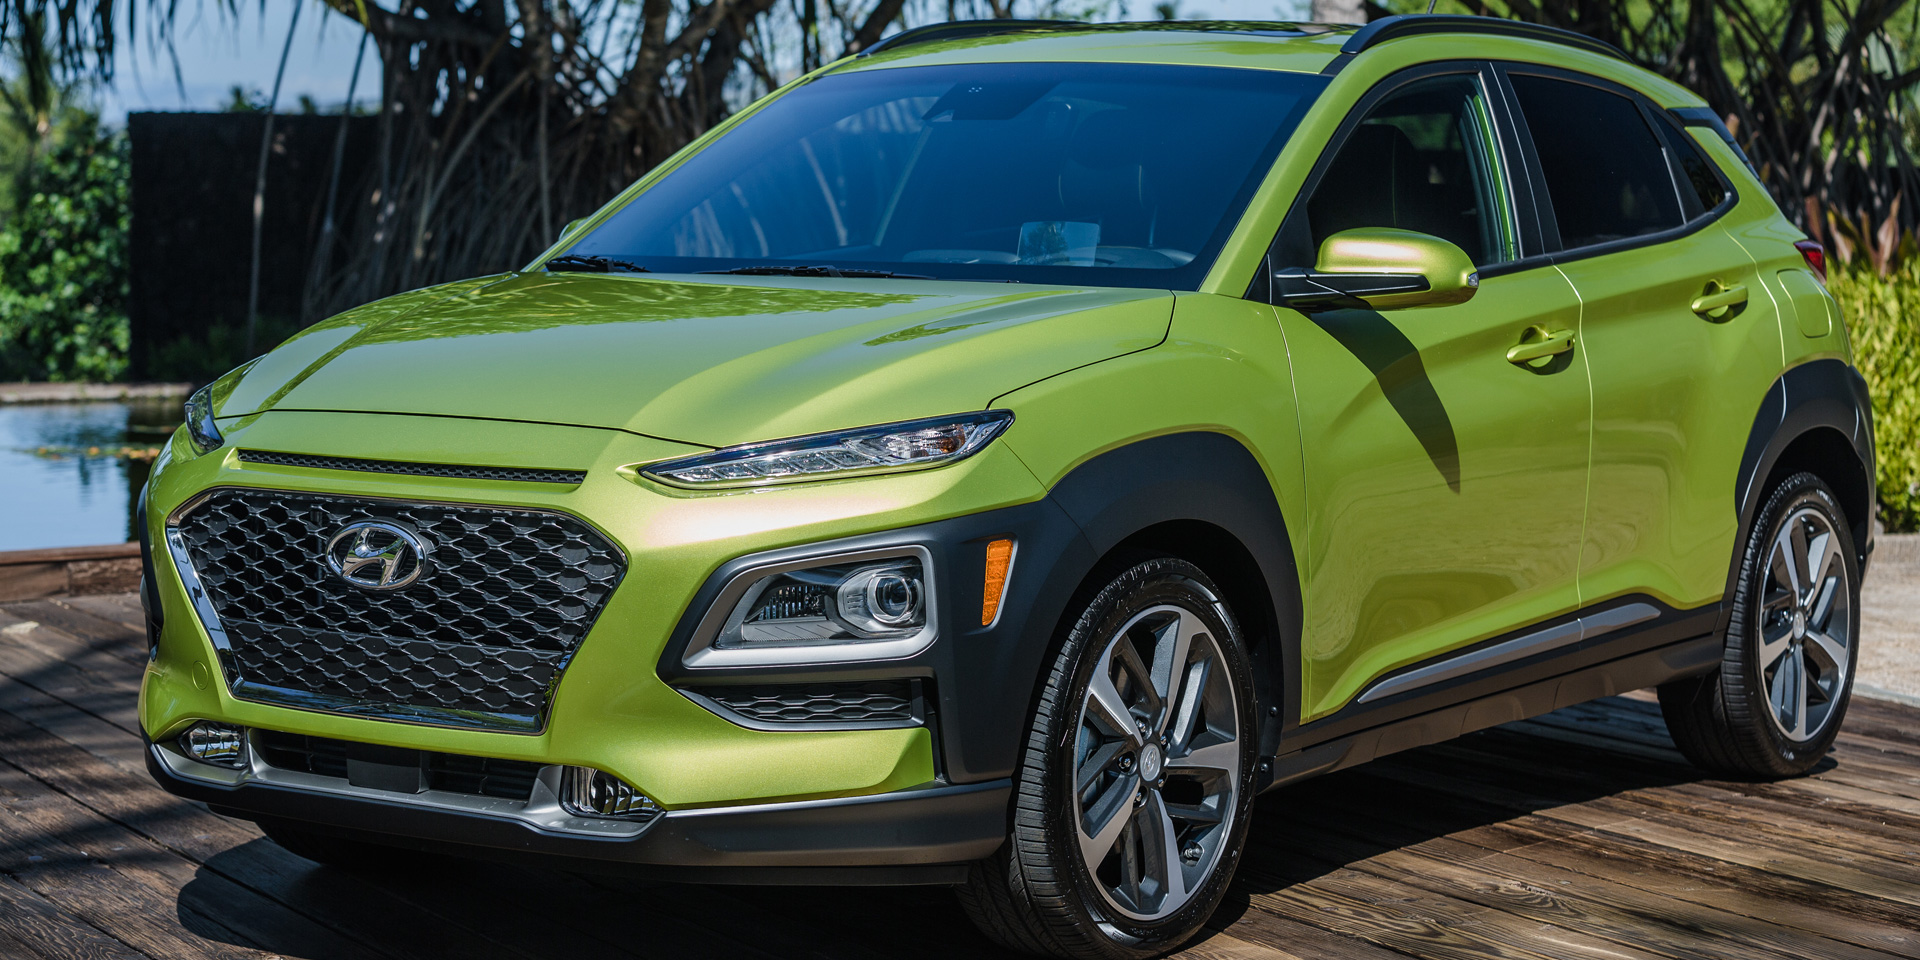 Hyundai Kona Vehicles On Display Chicago Auto Show - Hyundai car show